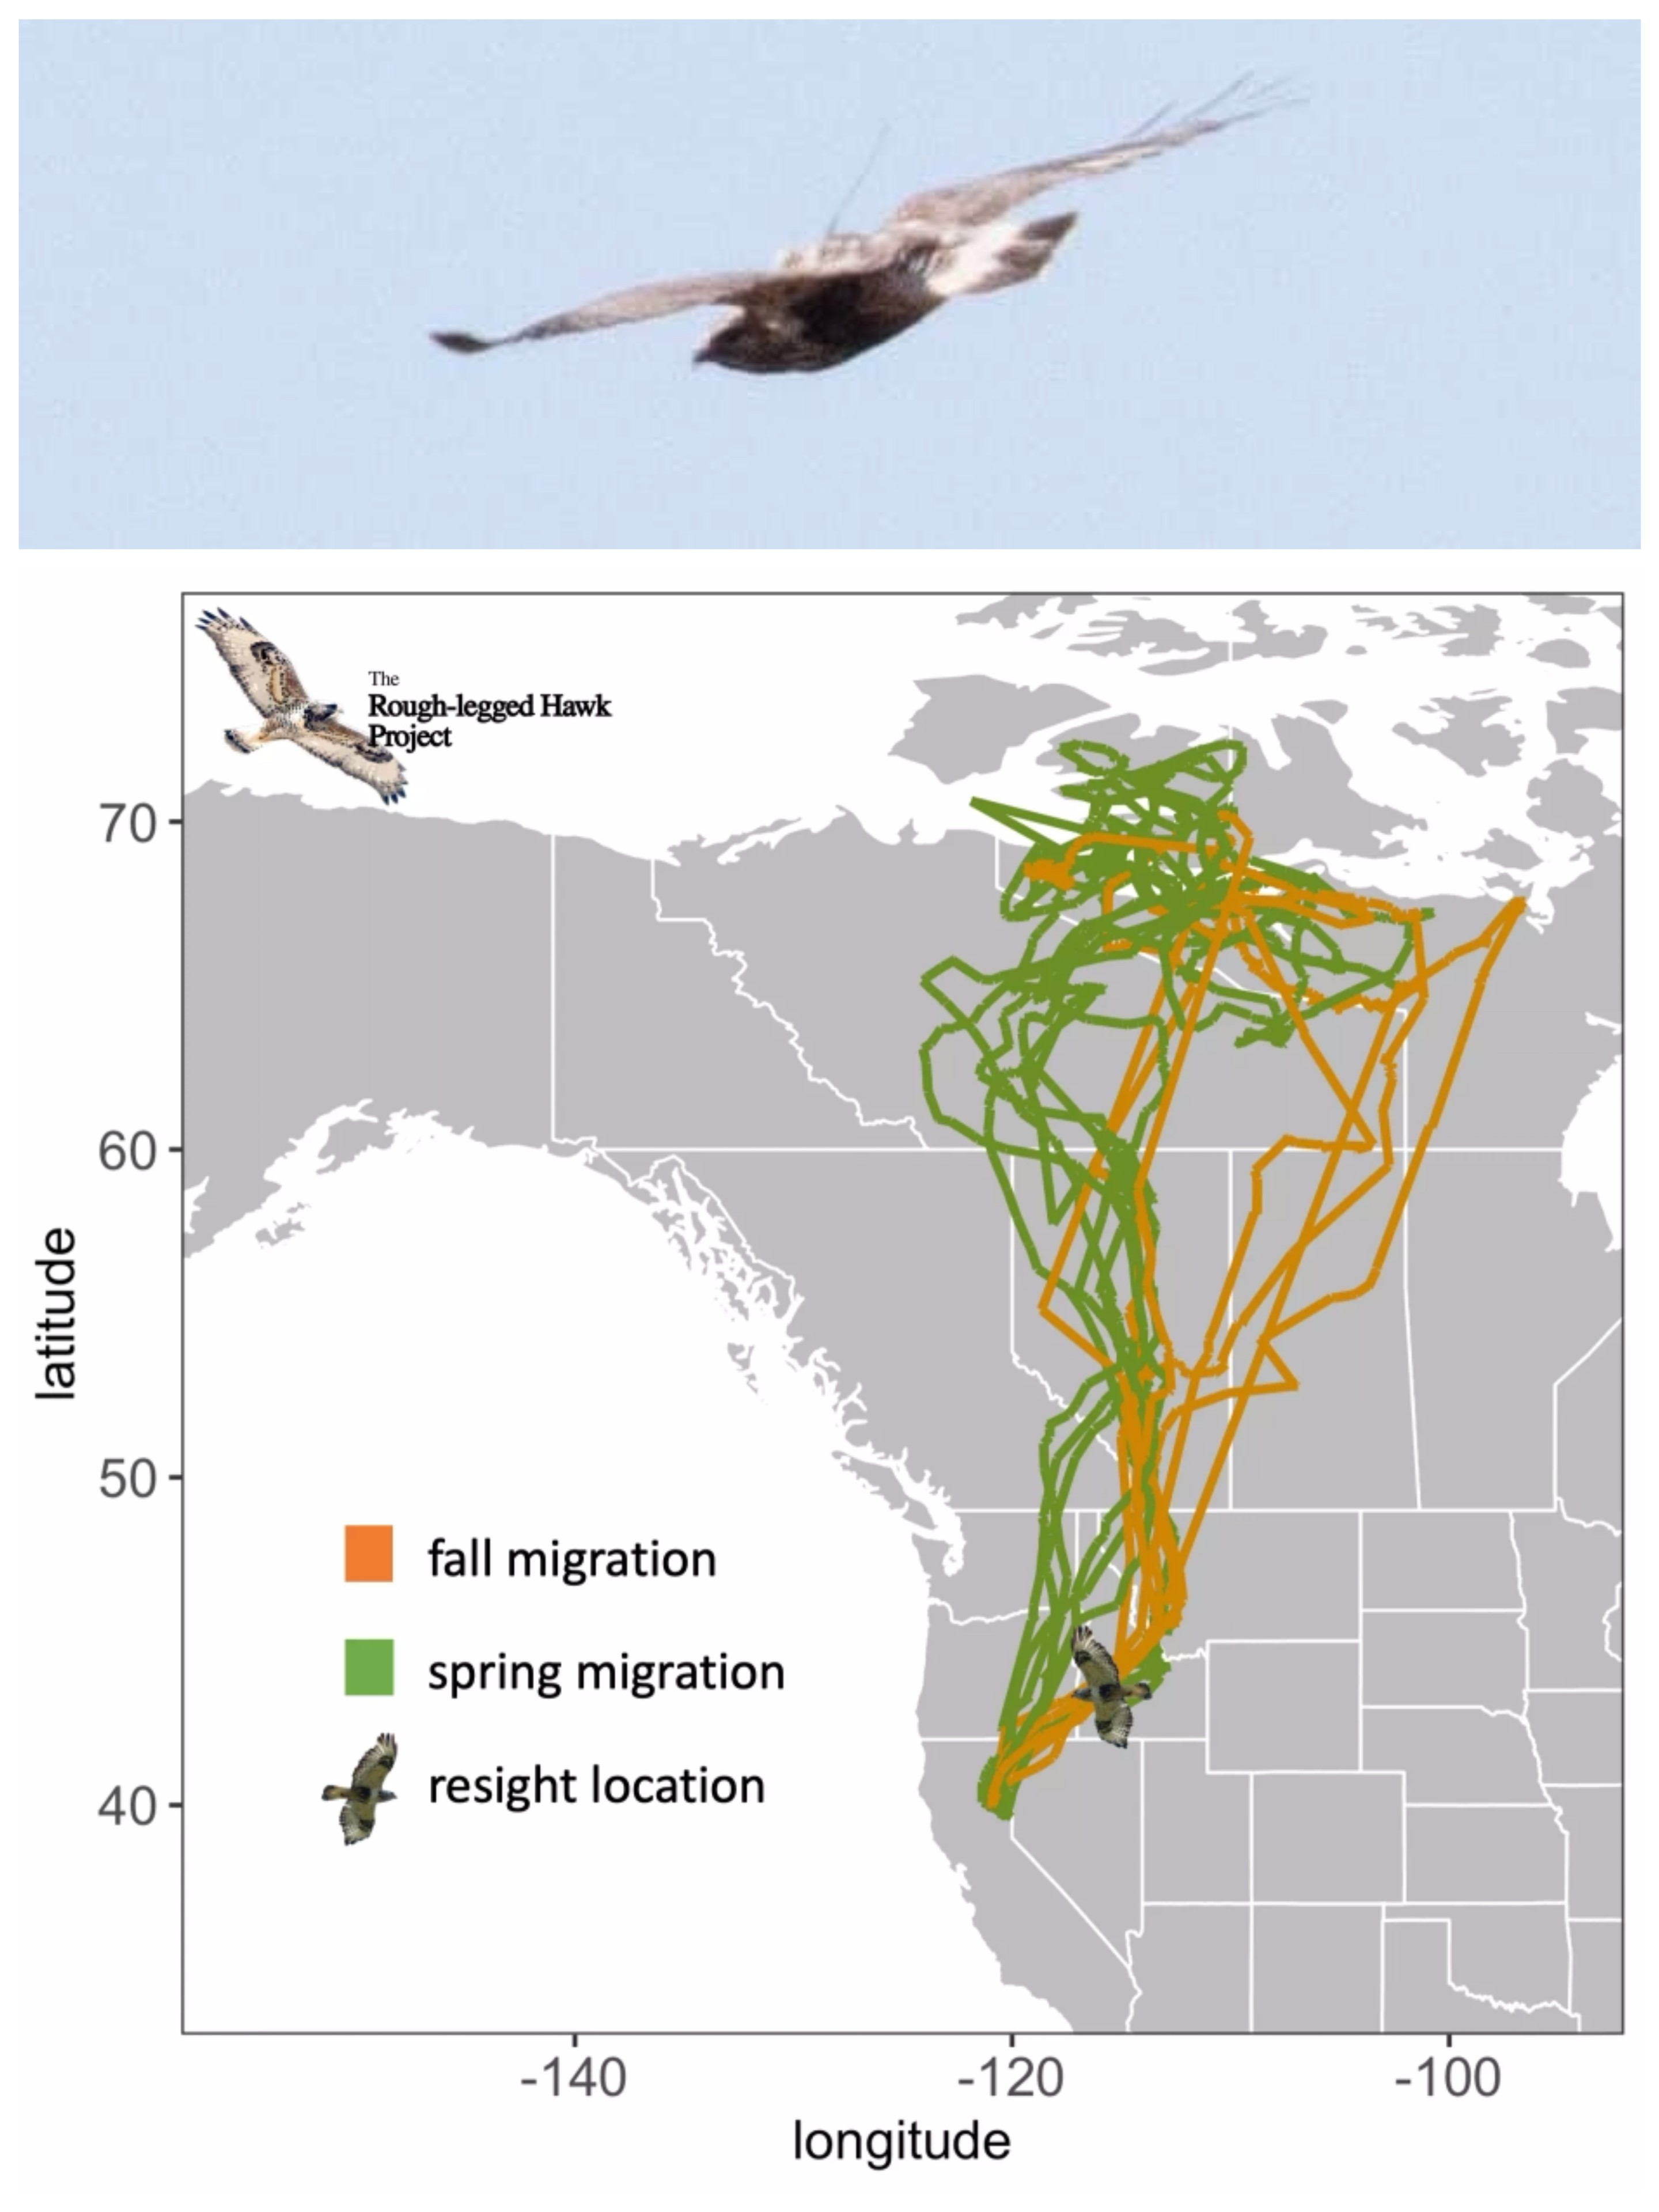 top image is a grainy photo shows a soaring hawk with a small antenna visible on its back. Lower image is a map of North America with tracks from this hawk. The tracks show spring migration from northern california with a wandering track leading north to the islands above Canada. Fall migration shows a wandering zigzag path leading south back to the starting location in california